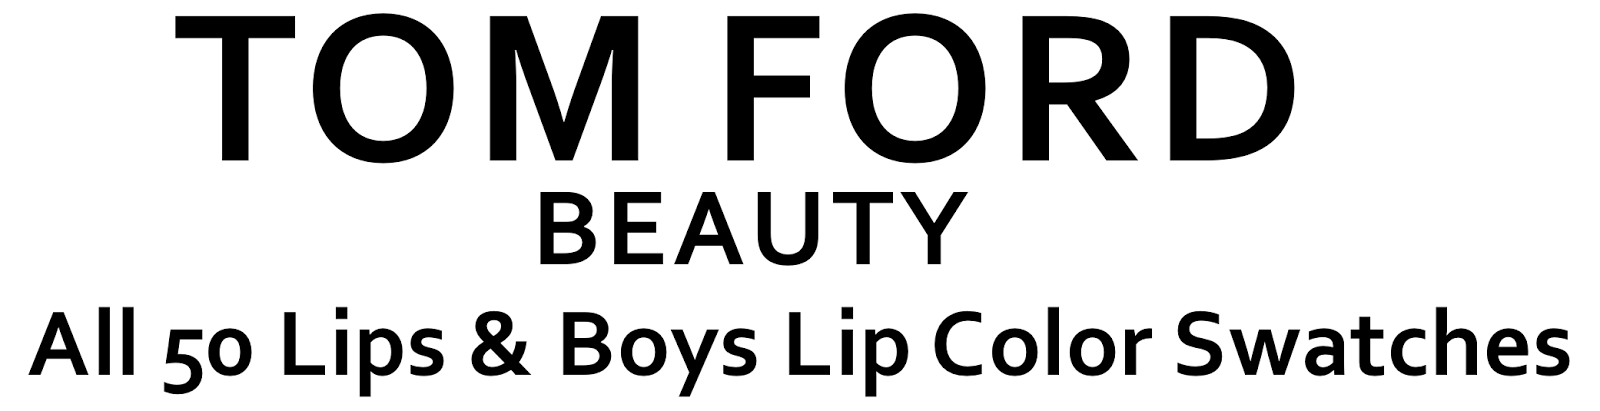 TOM FORD BEAUTY All 50 Lips & Boys Lip Color Swatches